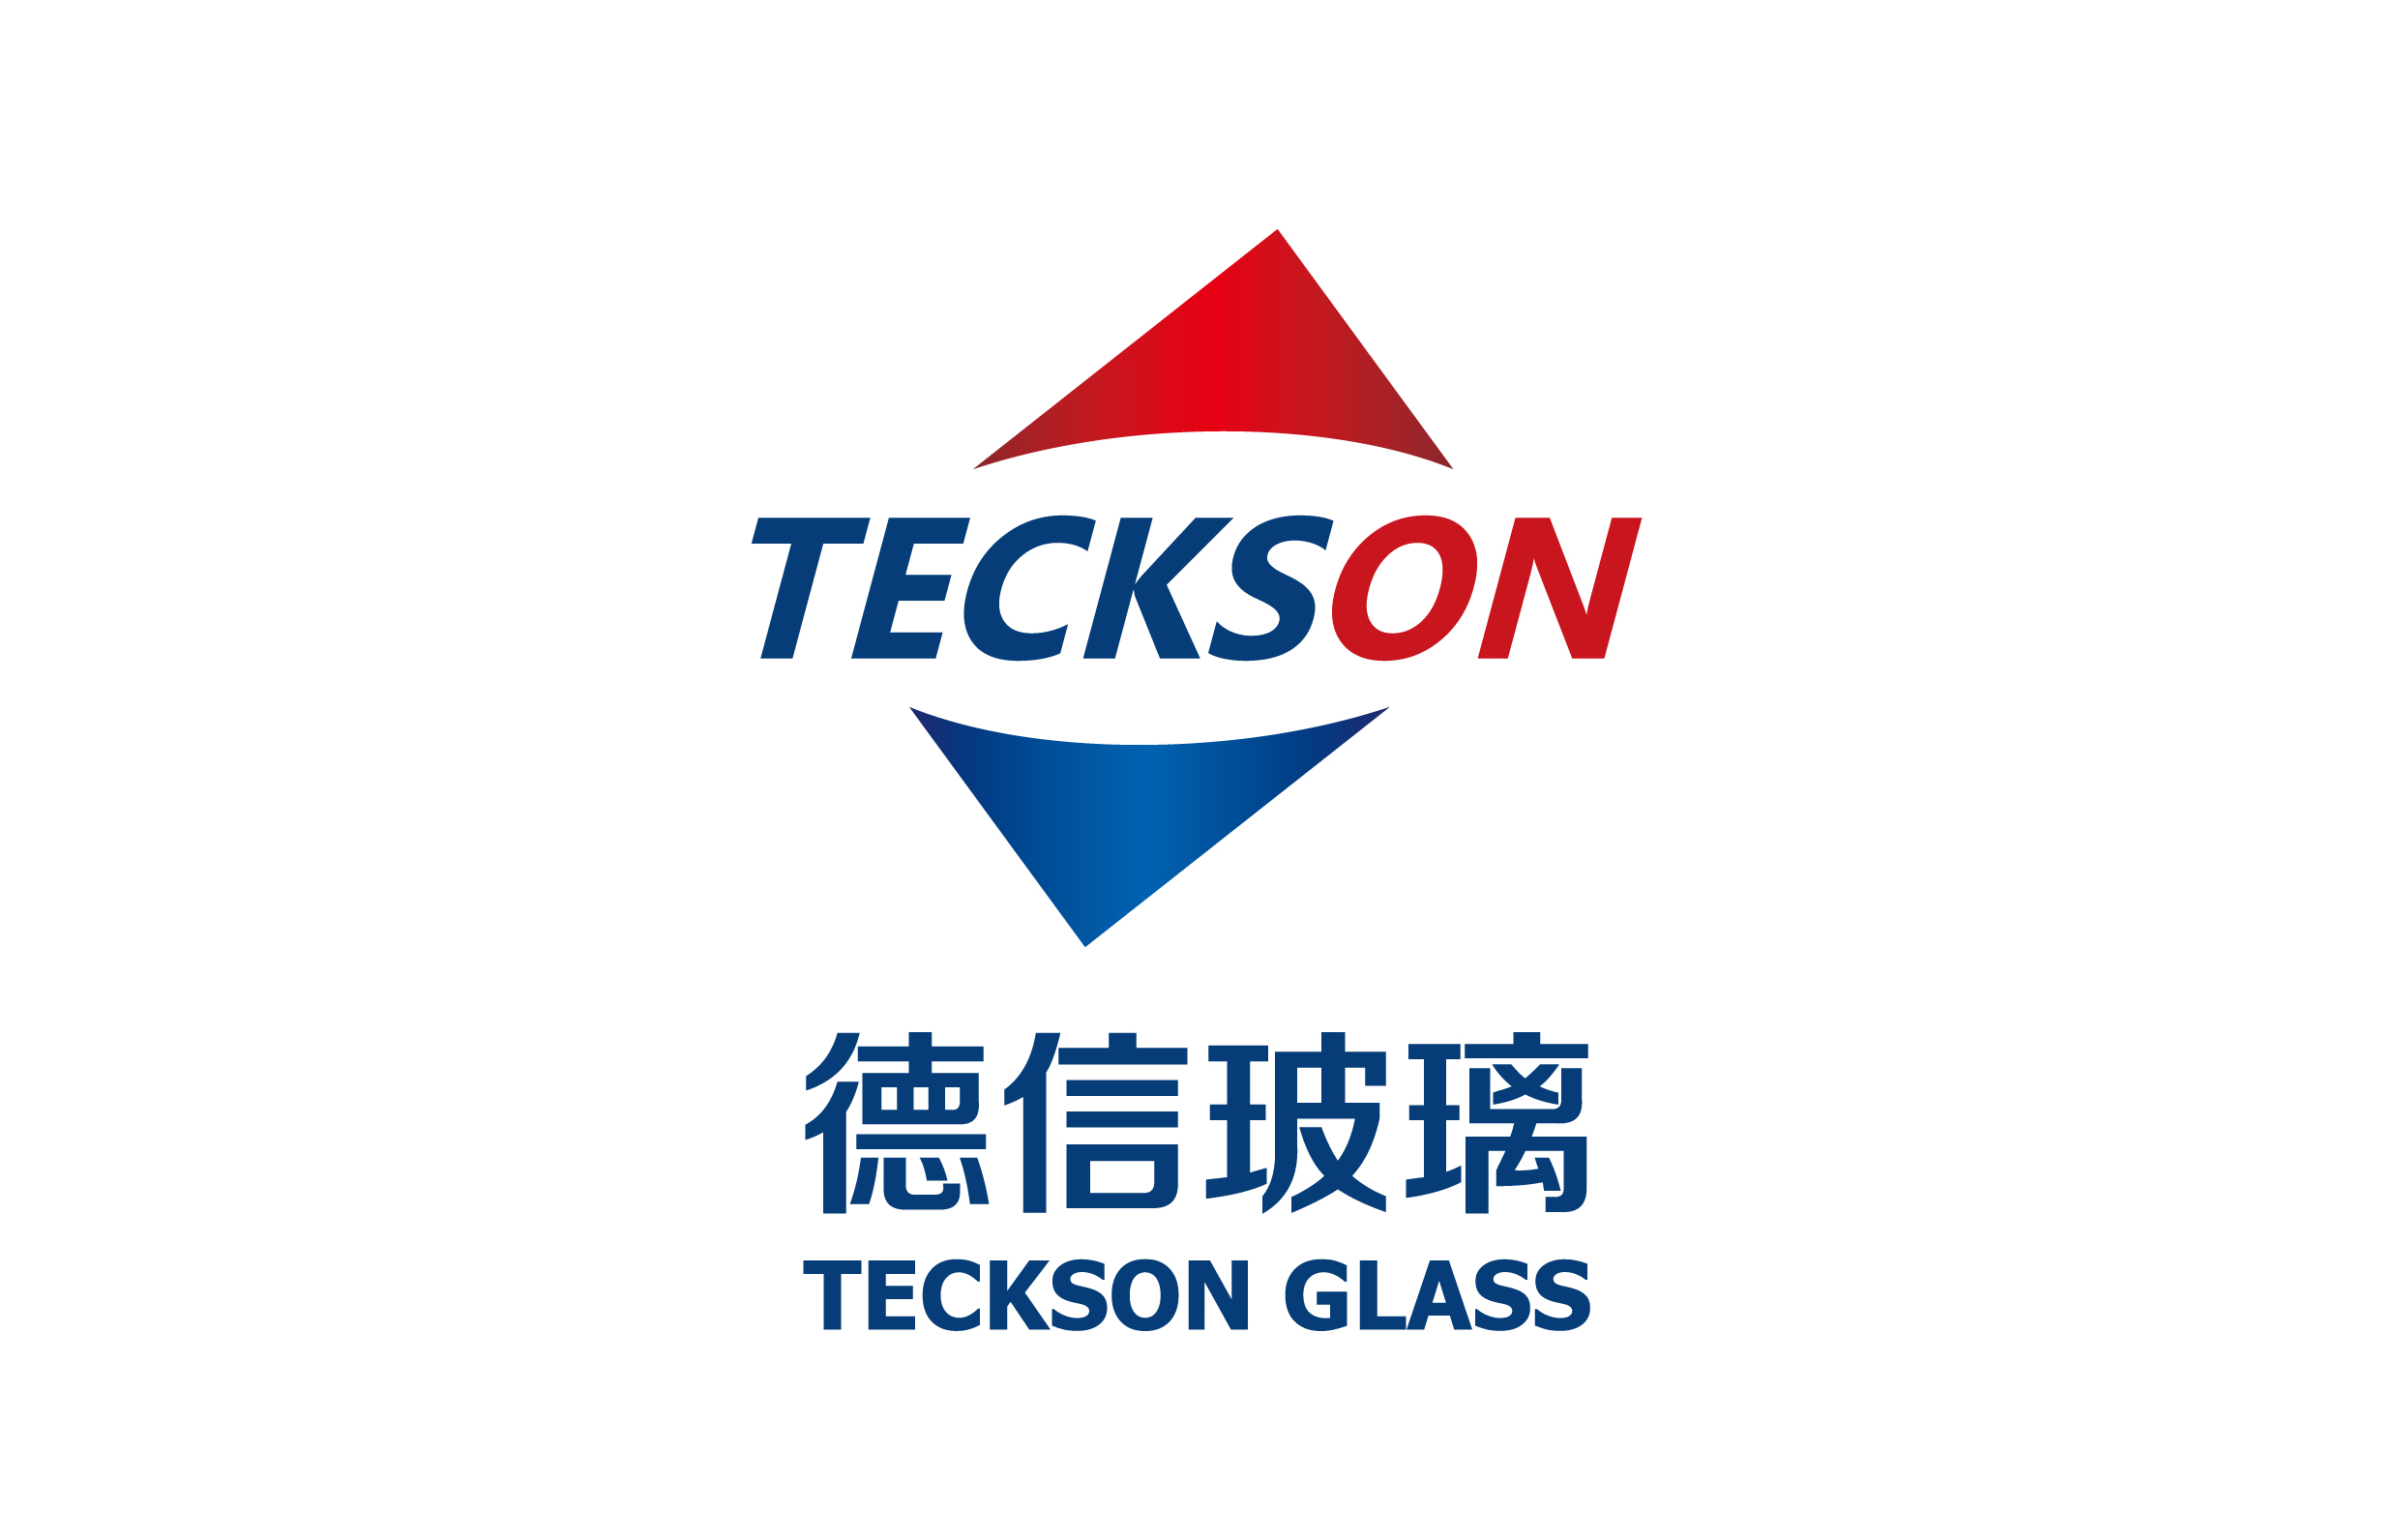 Teckson Glass Co., Ltd.